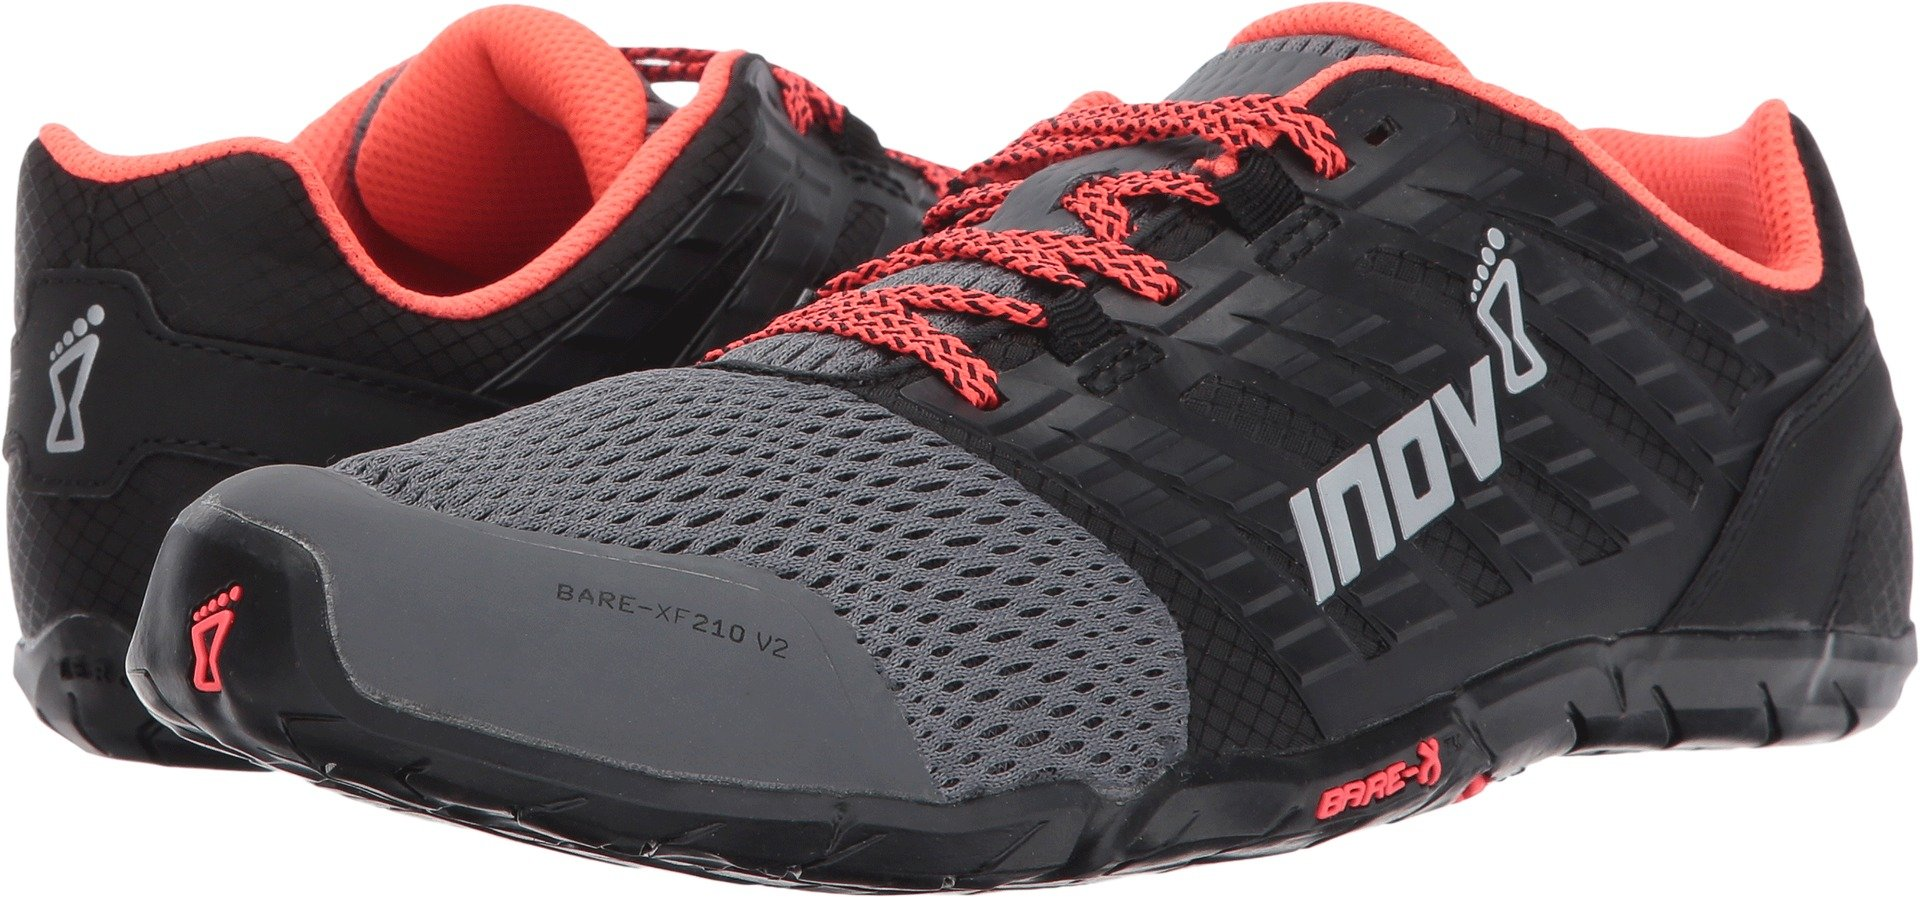 Inov-8 Women's Bare-XF 210 v2 (W) Cross Trainer, Grey/Black/Coral, 6 B US by Inov-8 (Image #1)